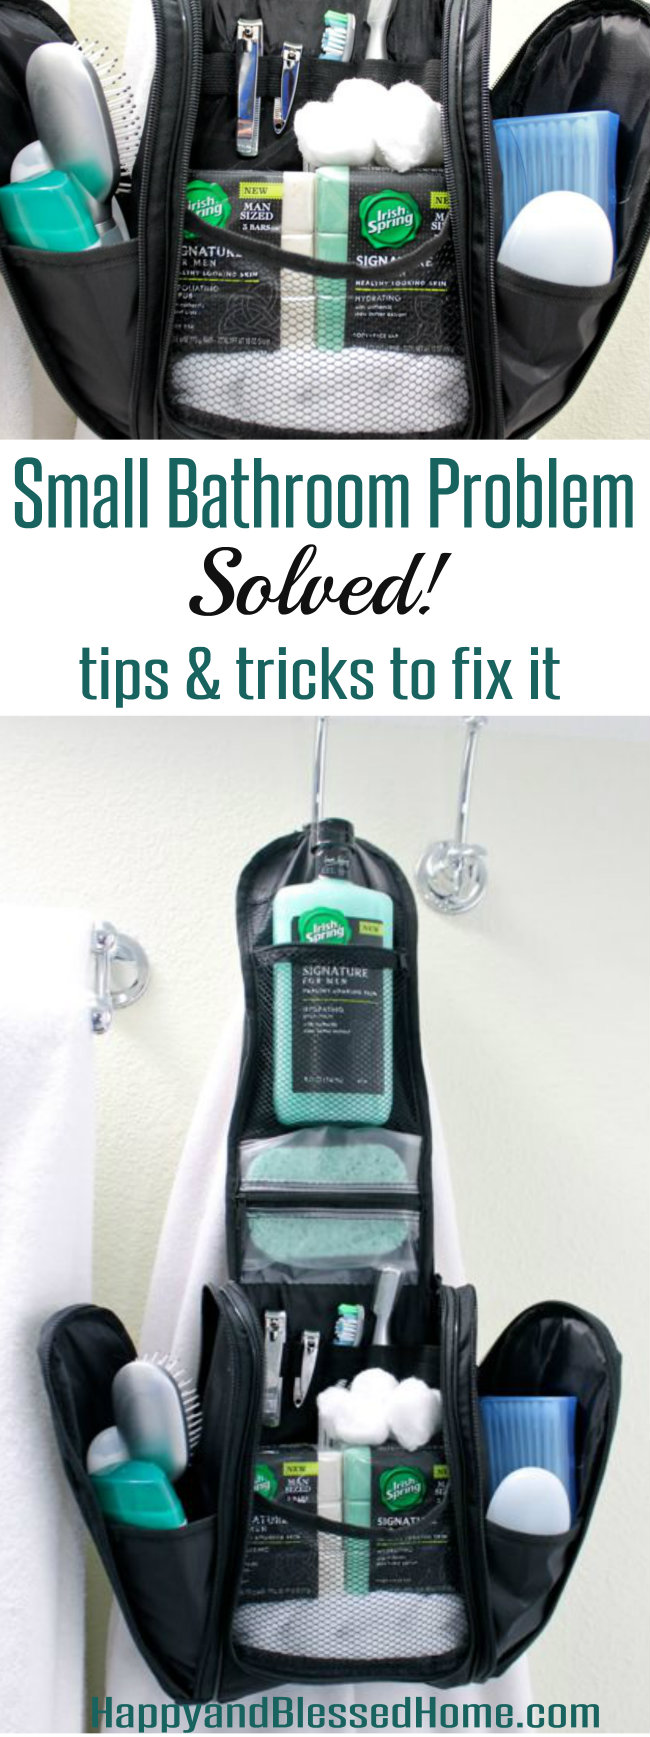 Small Bathroom Problem Solved - Use these tips and tricks to fix it! From HappyandBlessedHome.com